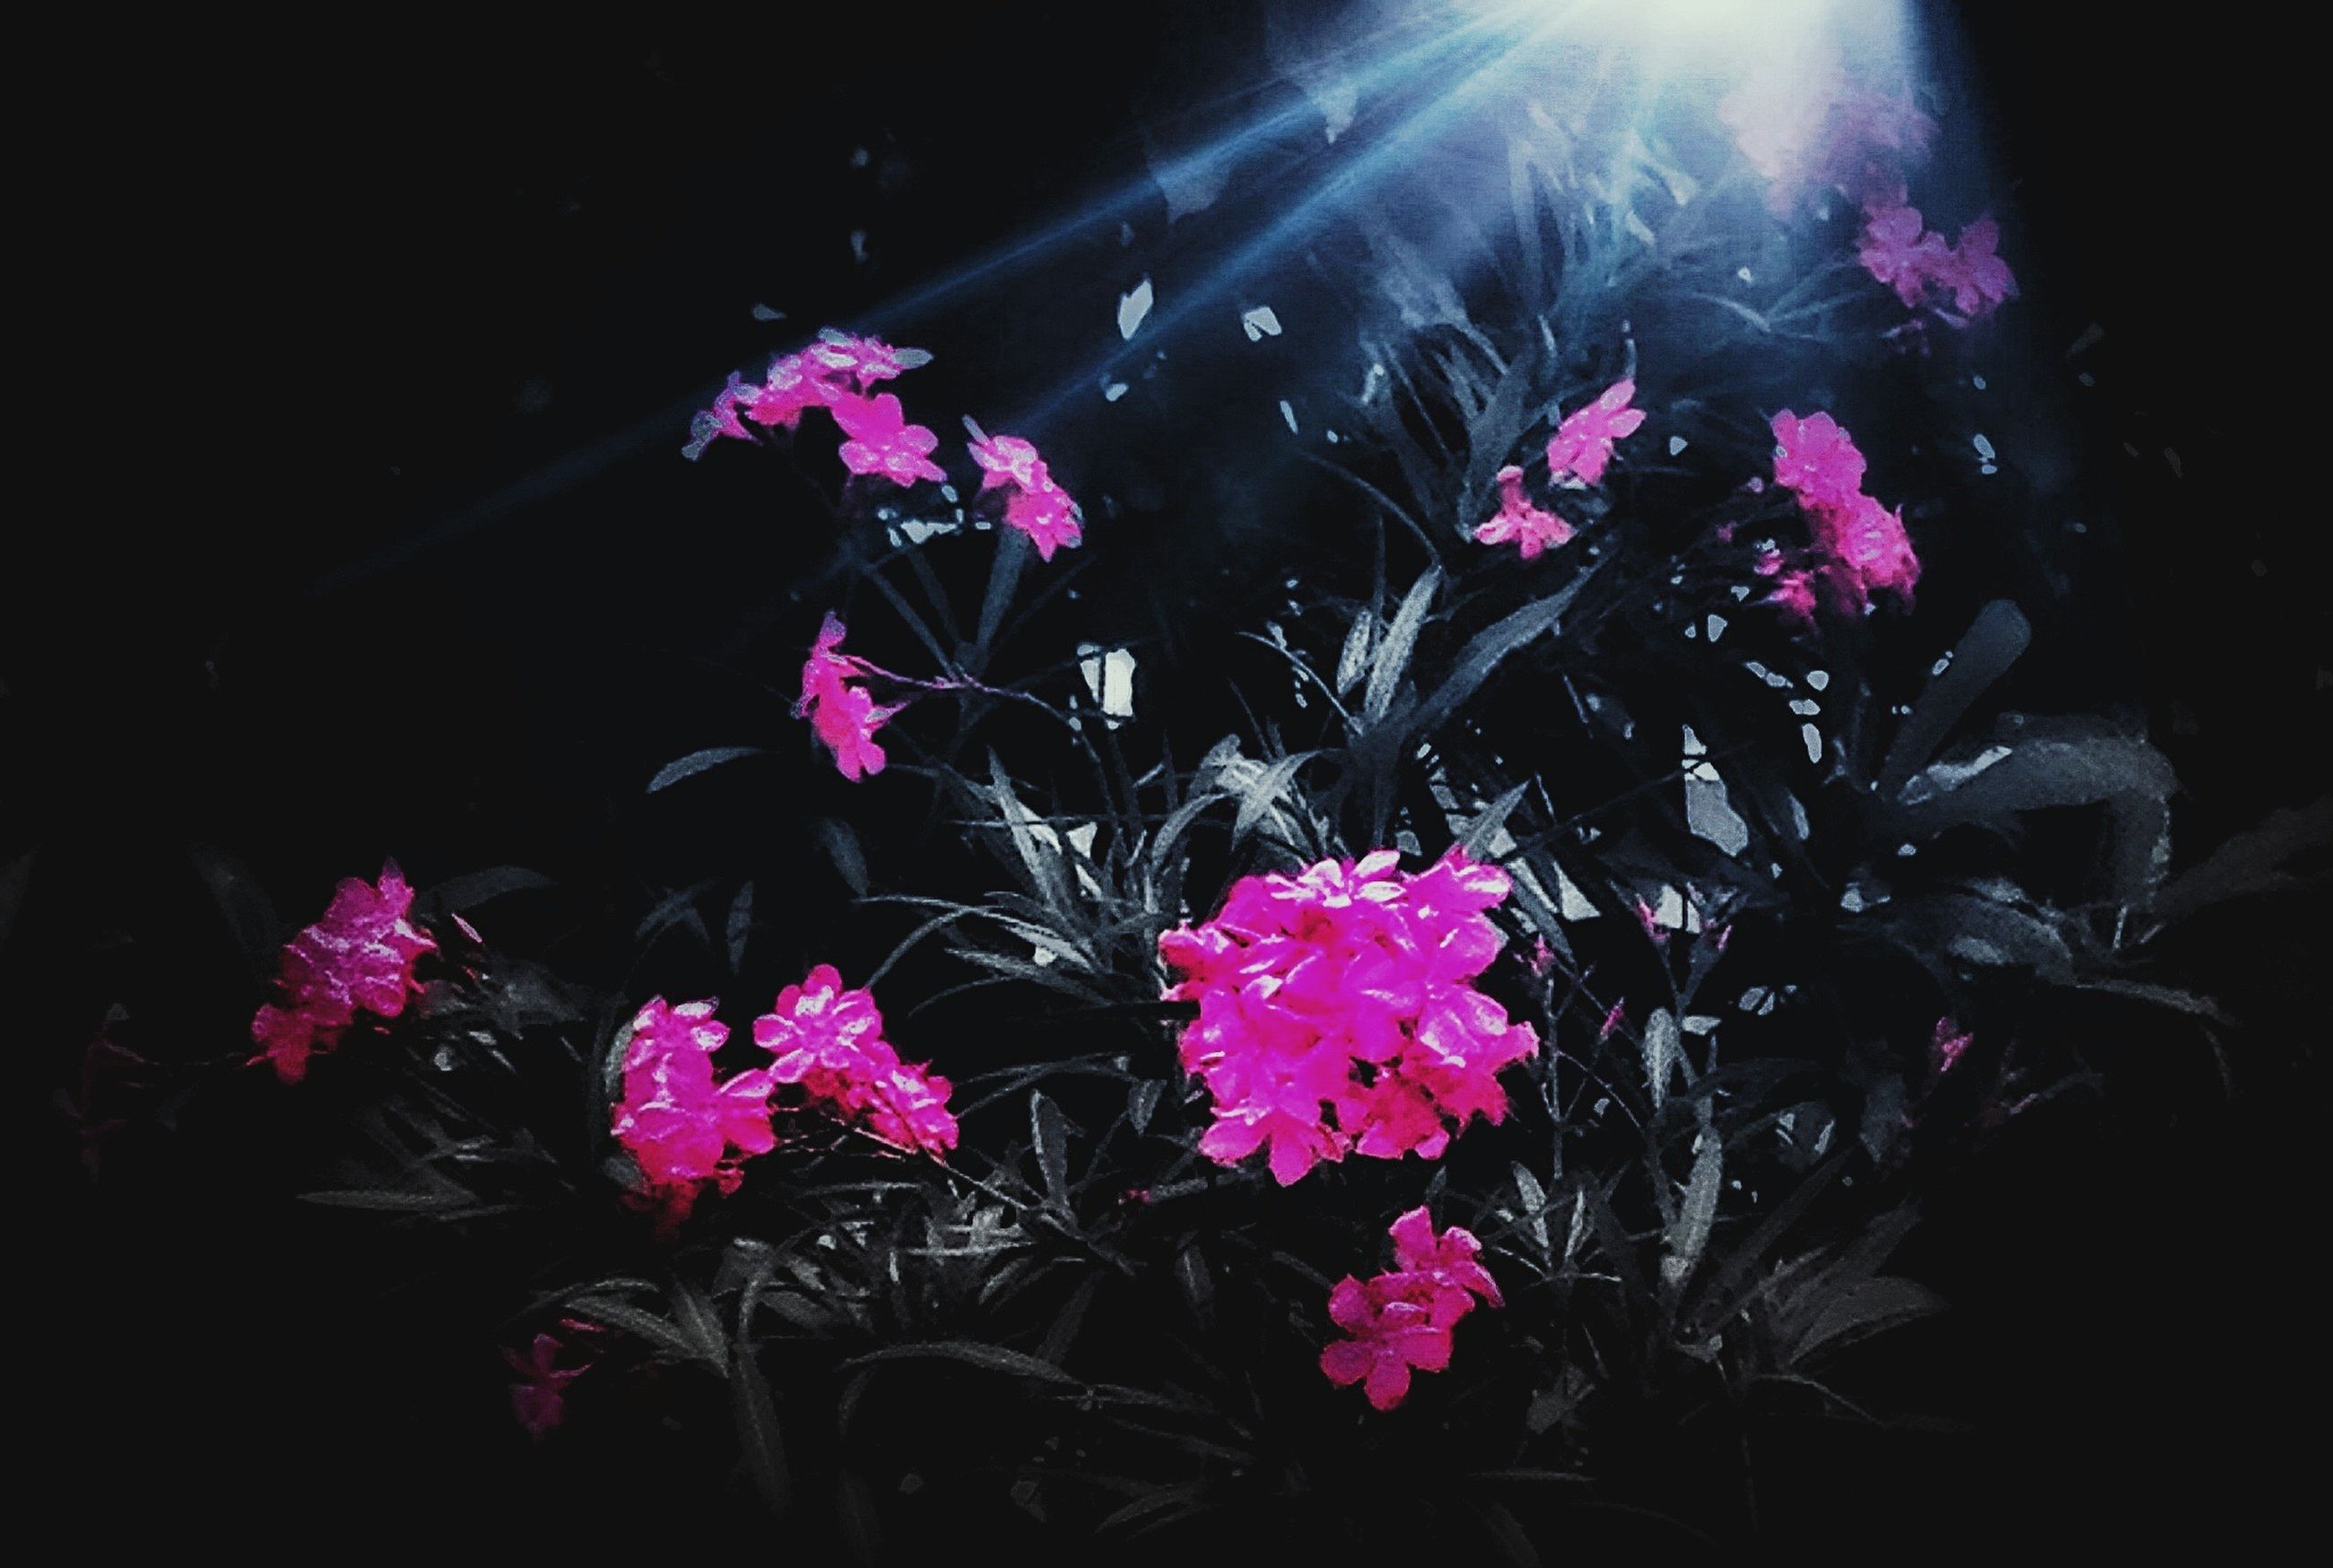 flower, no people, fragility, nature, night, beauty in nature, outdoors, freshness, undersea